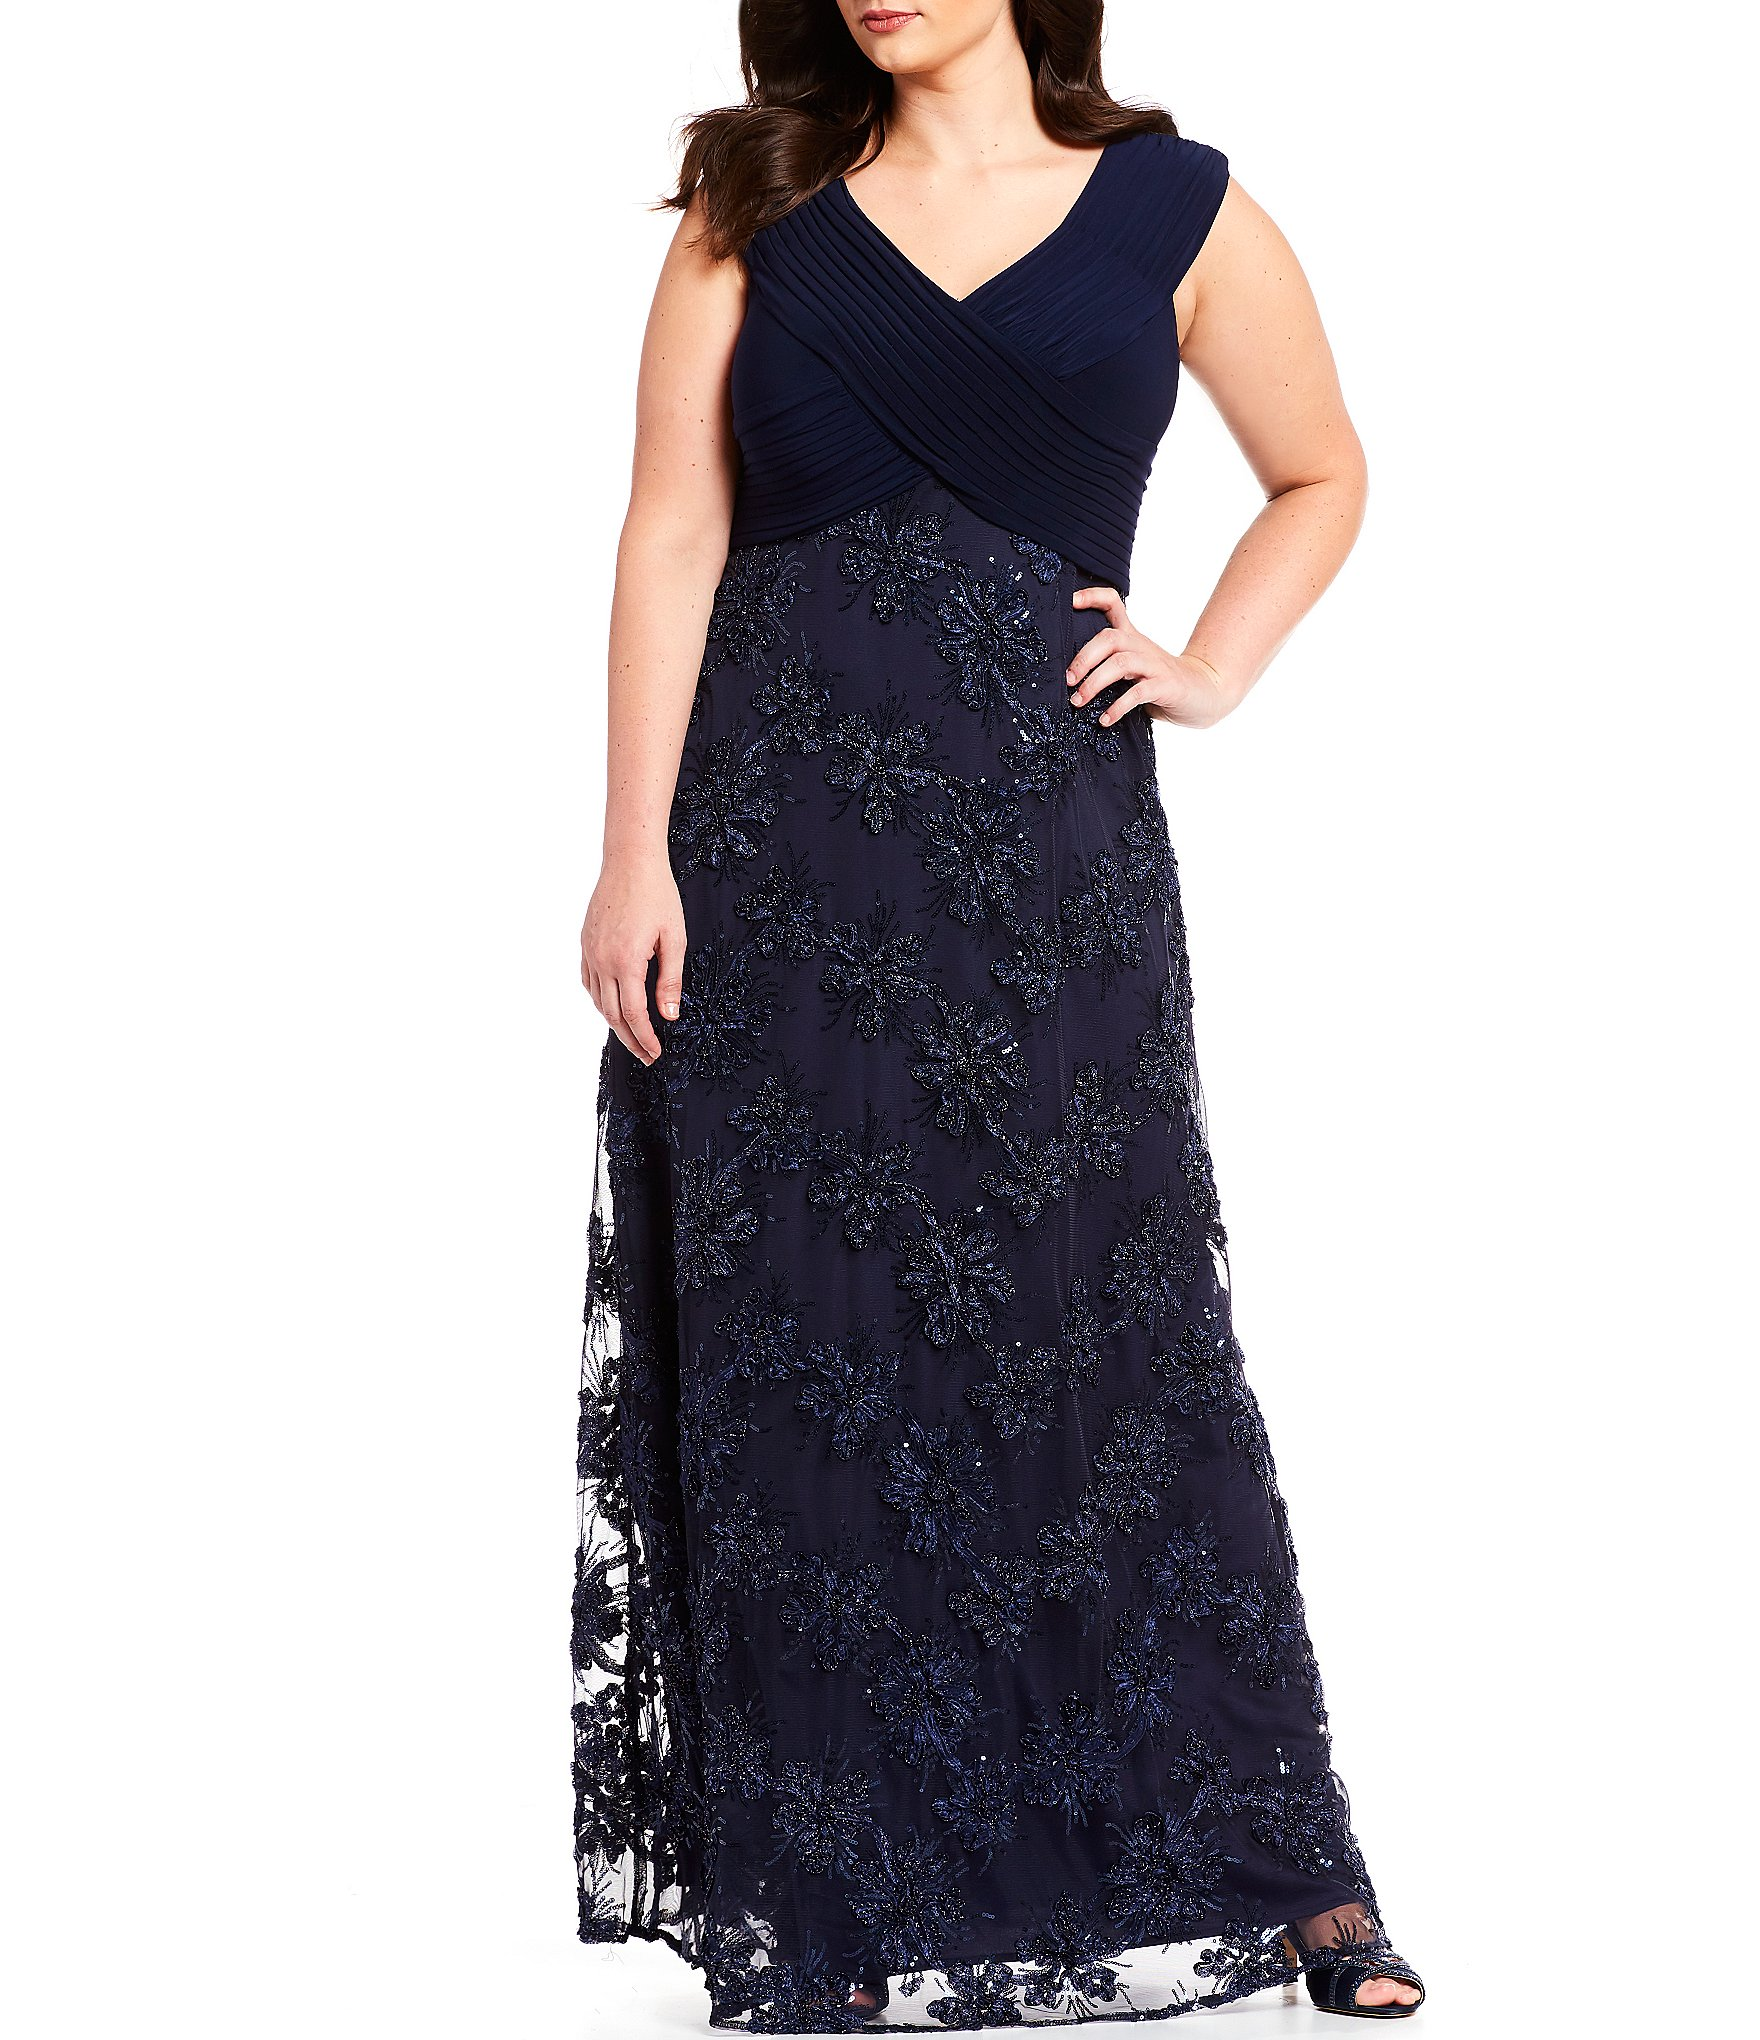 Plus-Size Formal Dresses & Gowns | Dillards